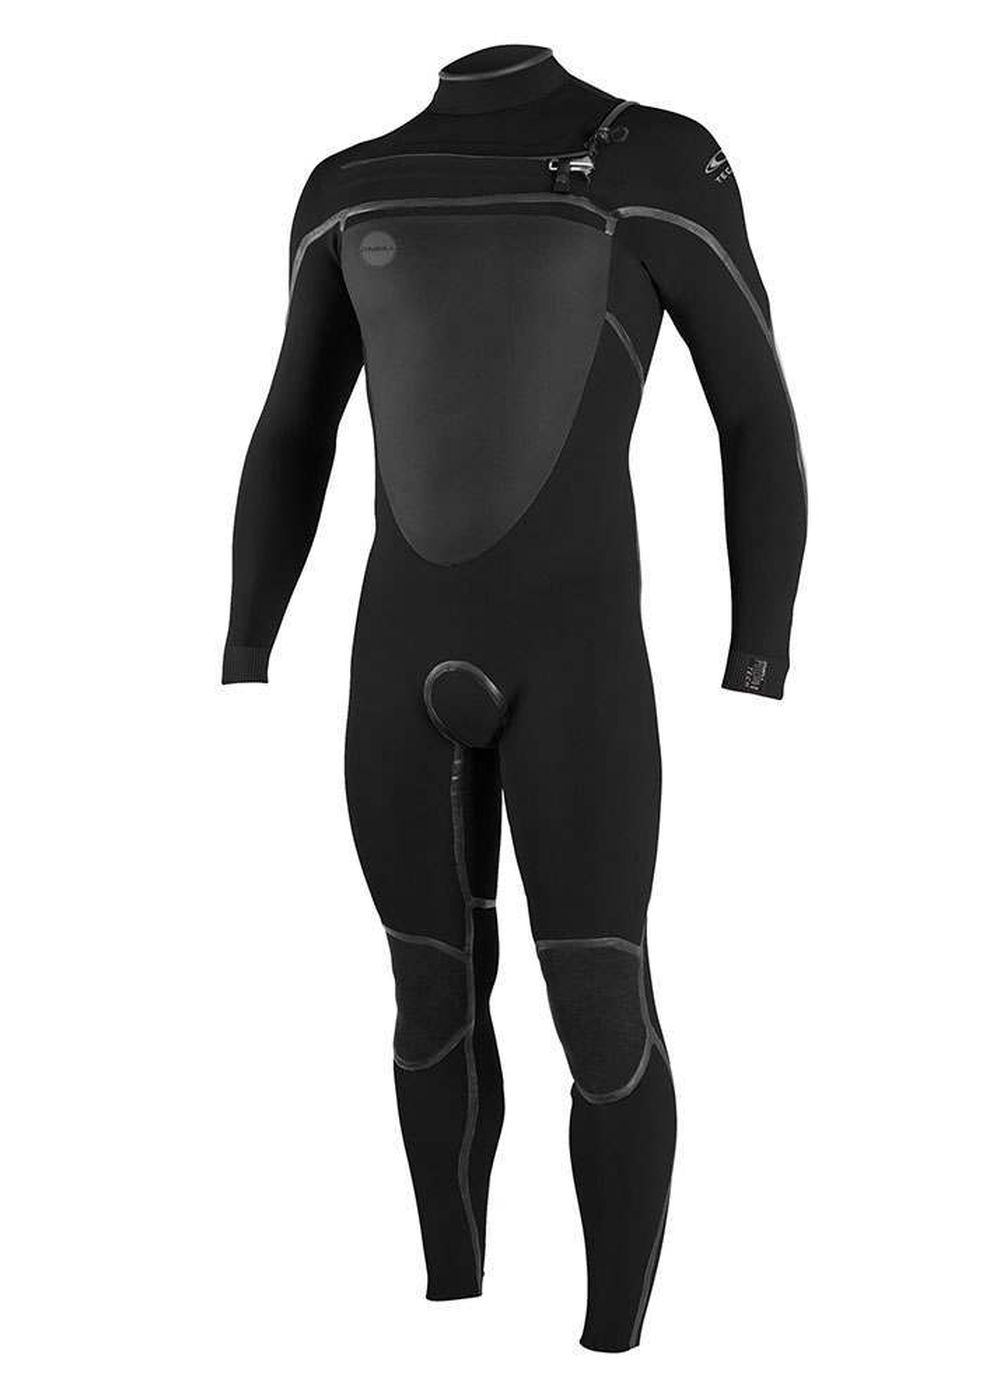 Oneill Psycho Tech Fz 4/3 Wetsuit 2018 Black Picture